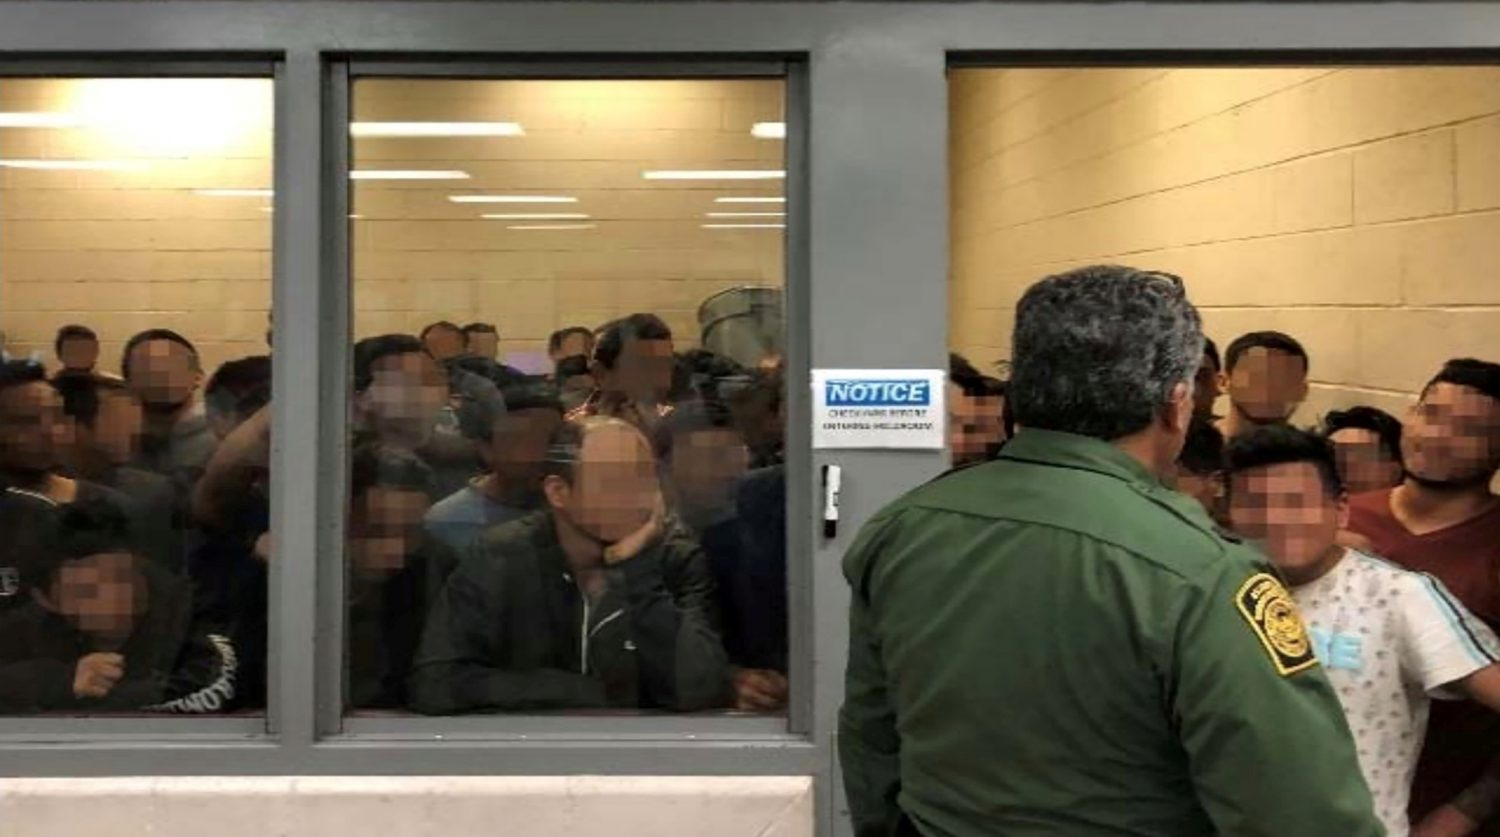 FILE PHOTO: Men are crowded in a room at a Border Patrol station in a still image from video in McAllen, Texas, U.S. on June 10, 2019 and released as part of a report by the Department of Homeland Security's Office of Inspector General on July 2, 2019. Picture pixelated at source. Office of Inspector General/DHS/Handout via REUTERS./File Photo